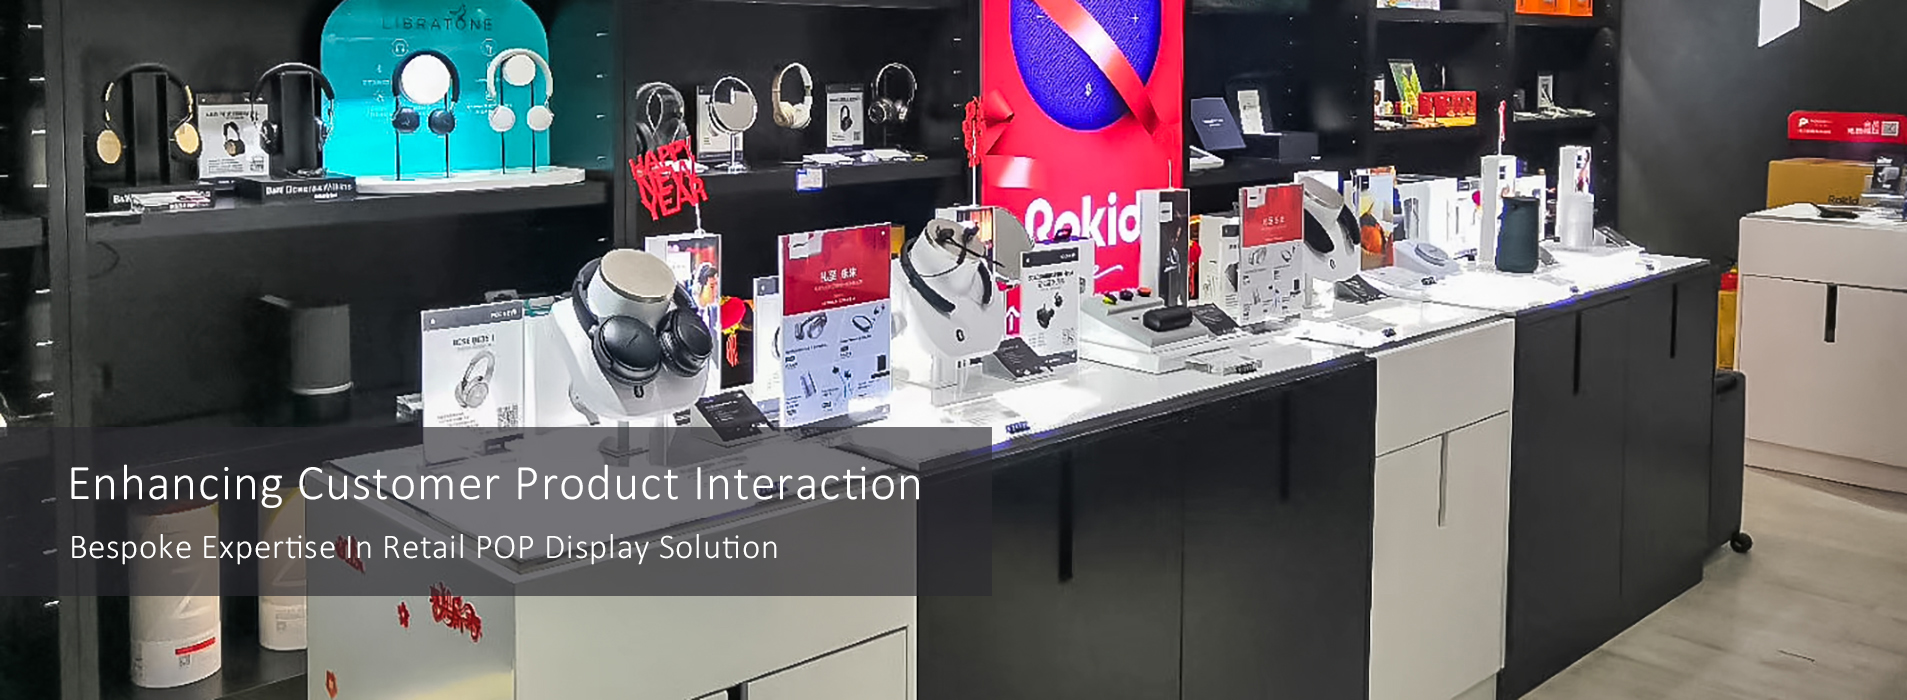 RECHI Bespoke Expertise In Retail POP Display Solution for Retail Electronic Store